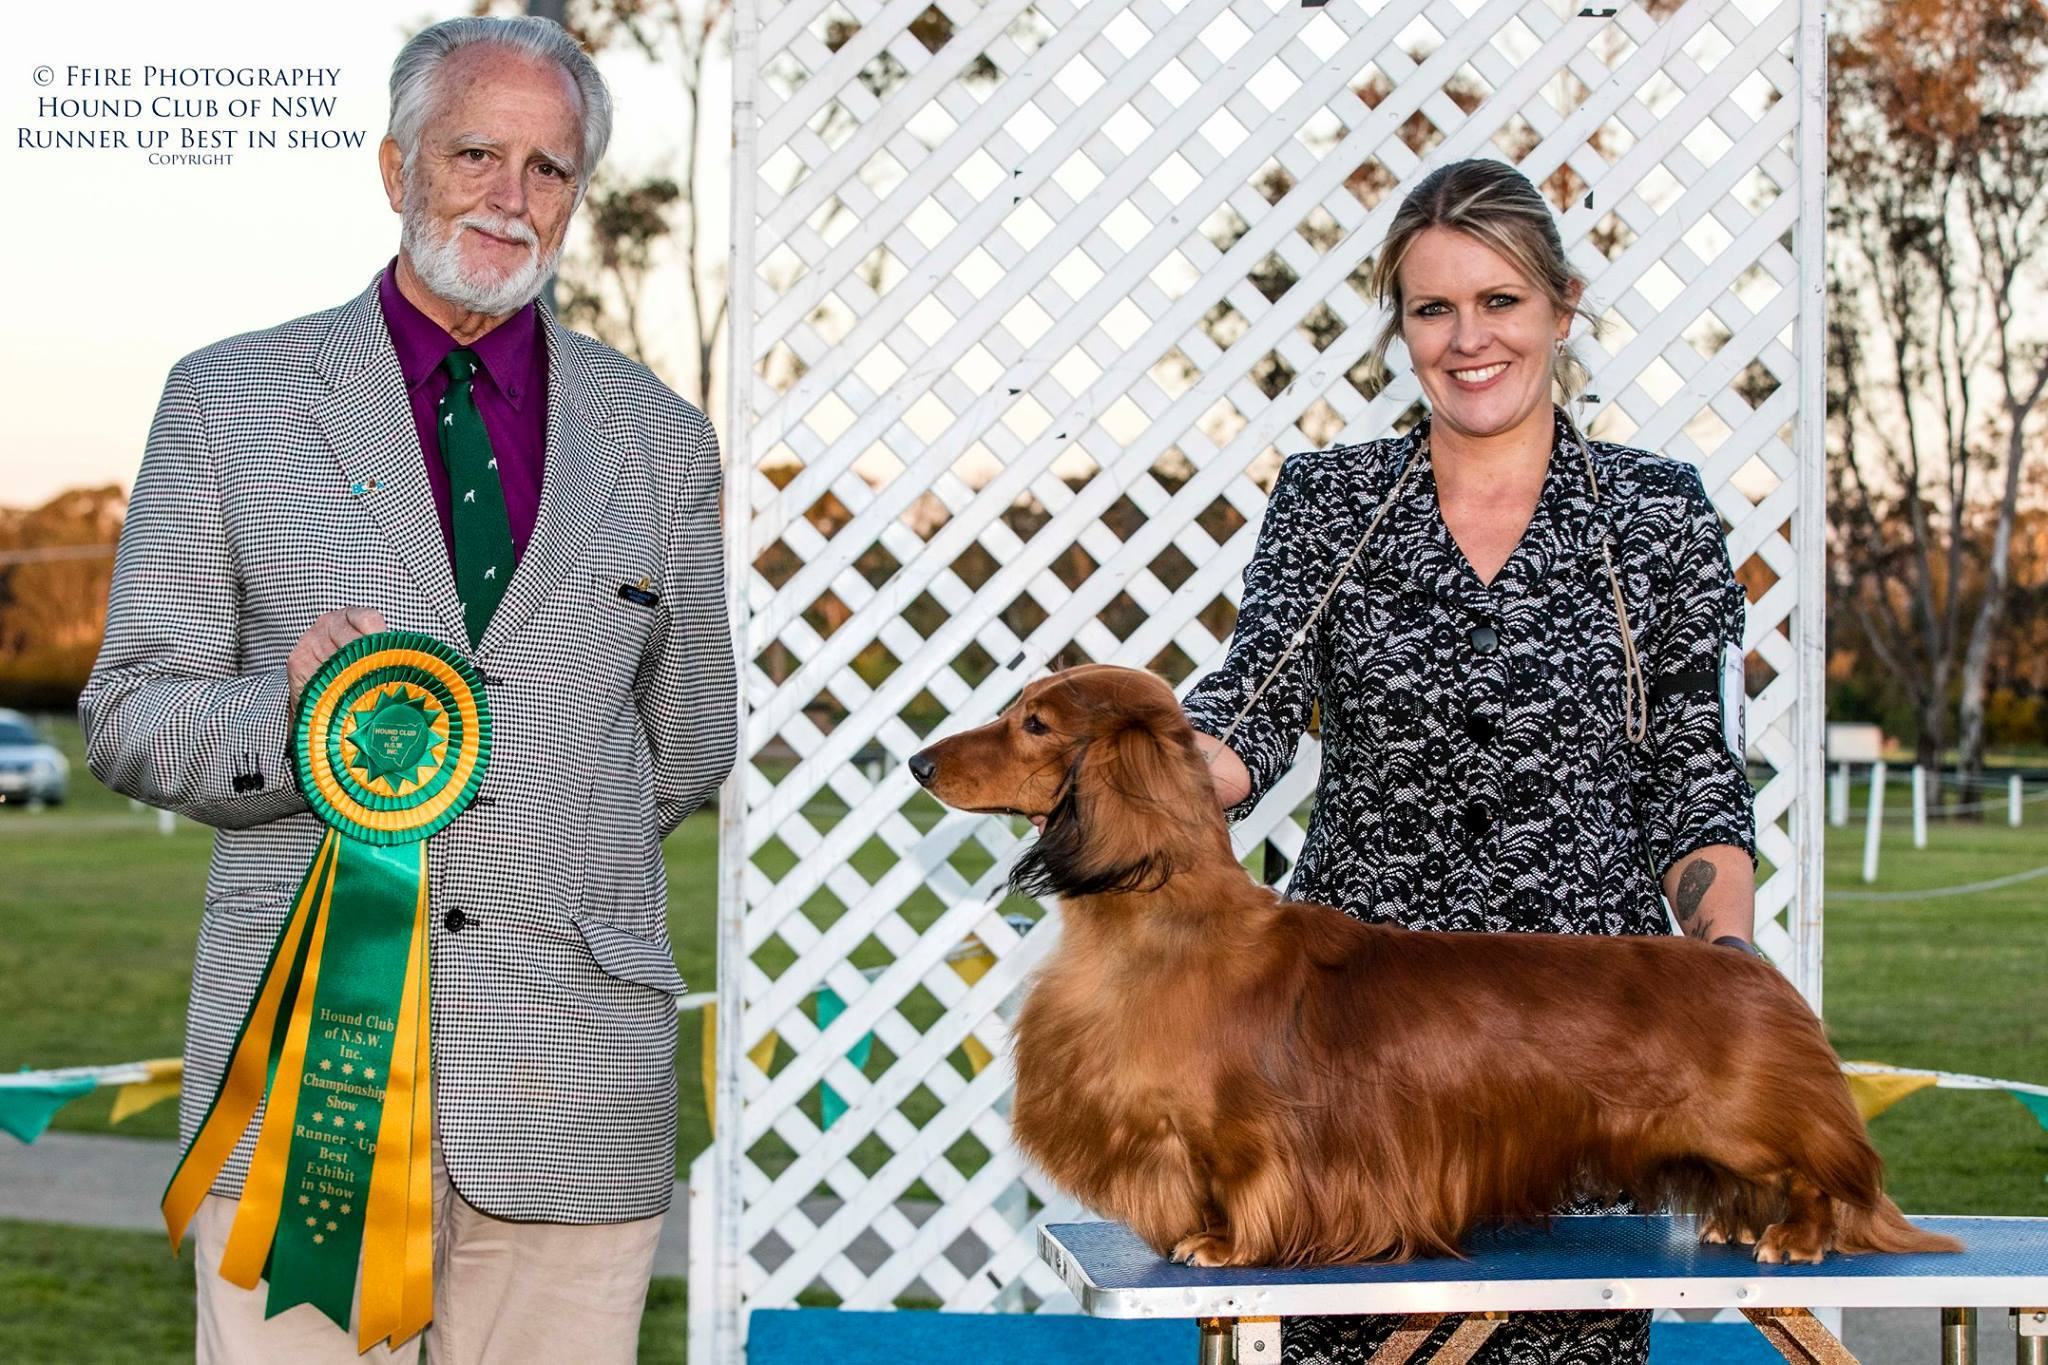 Jimmy wins Runner-Up Best in Show at the Hound of NSW!